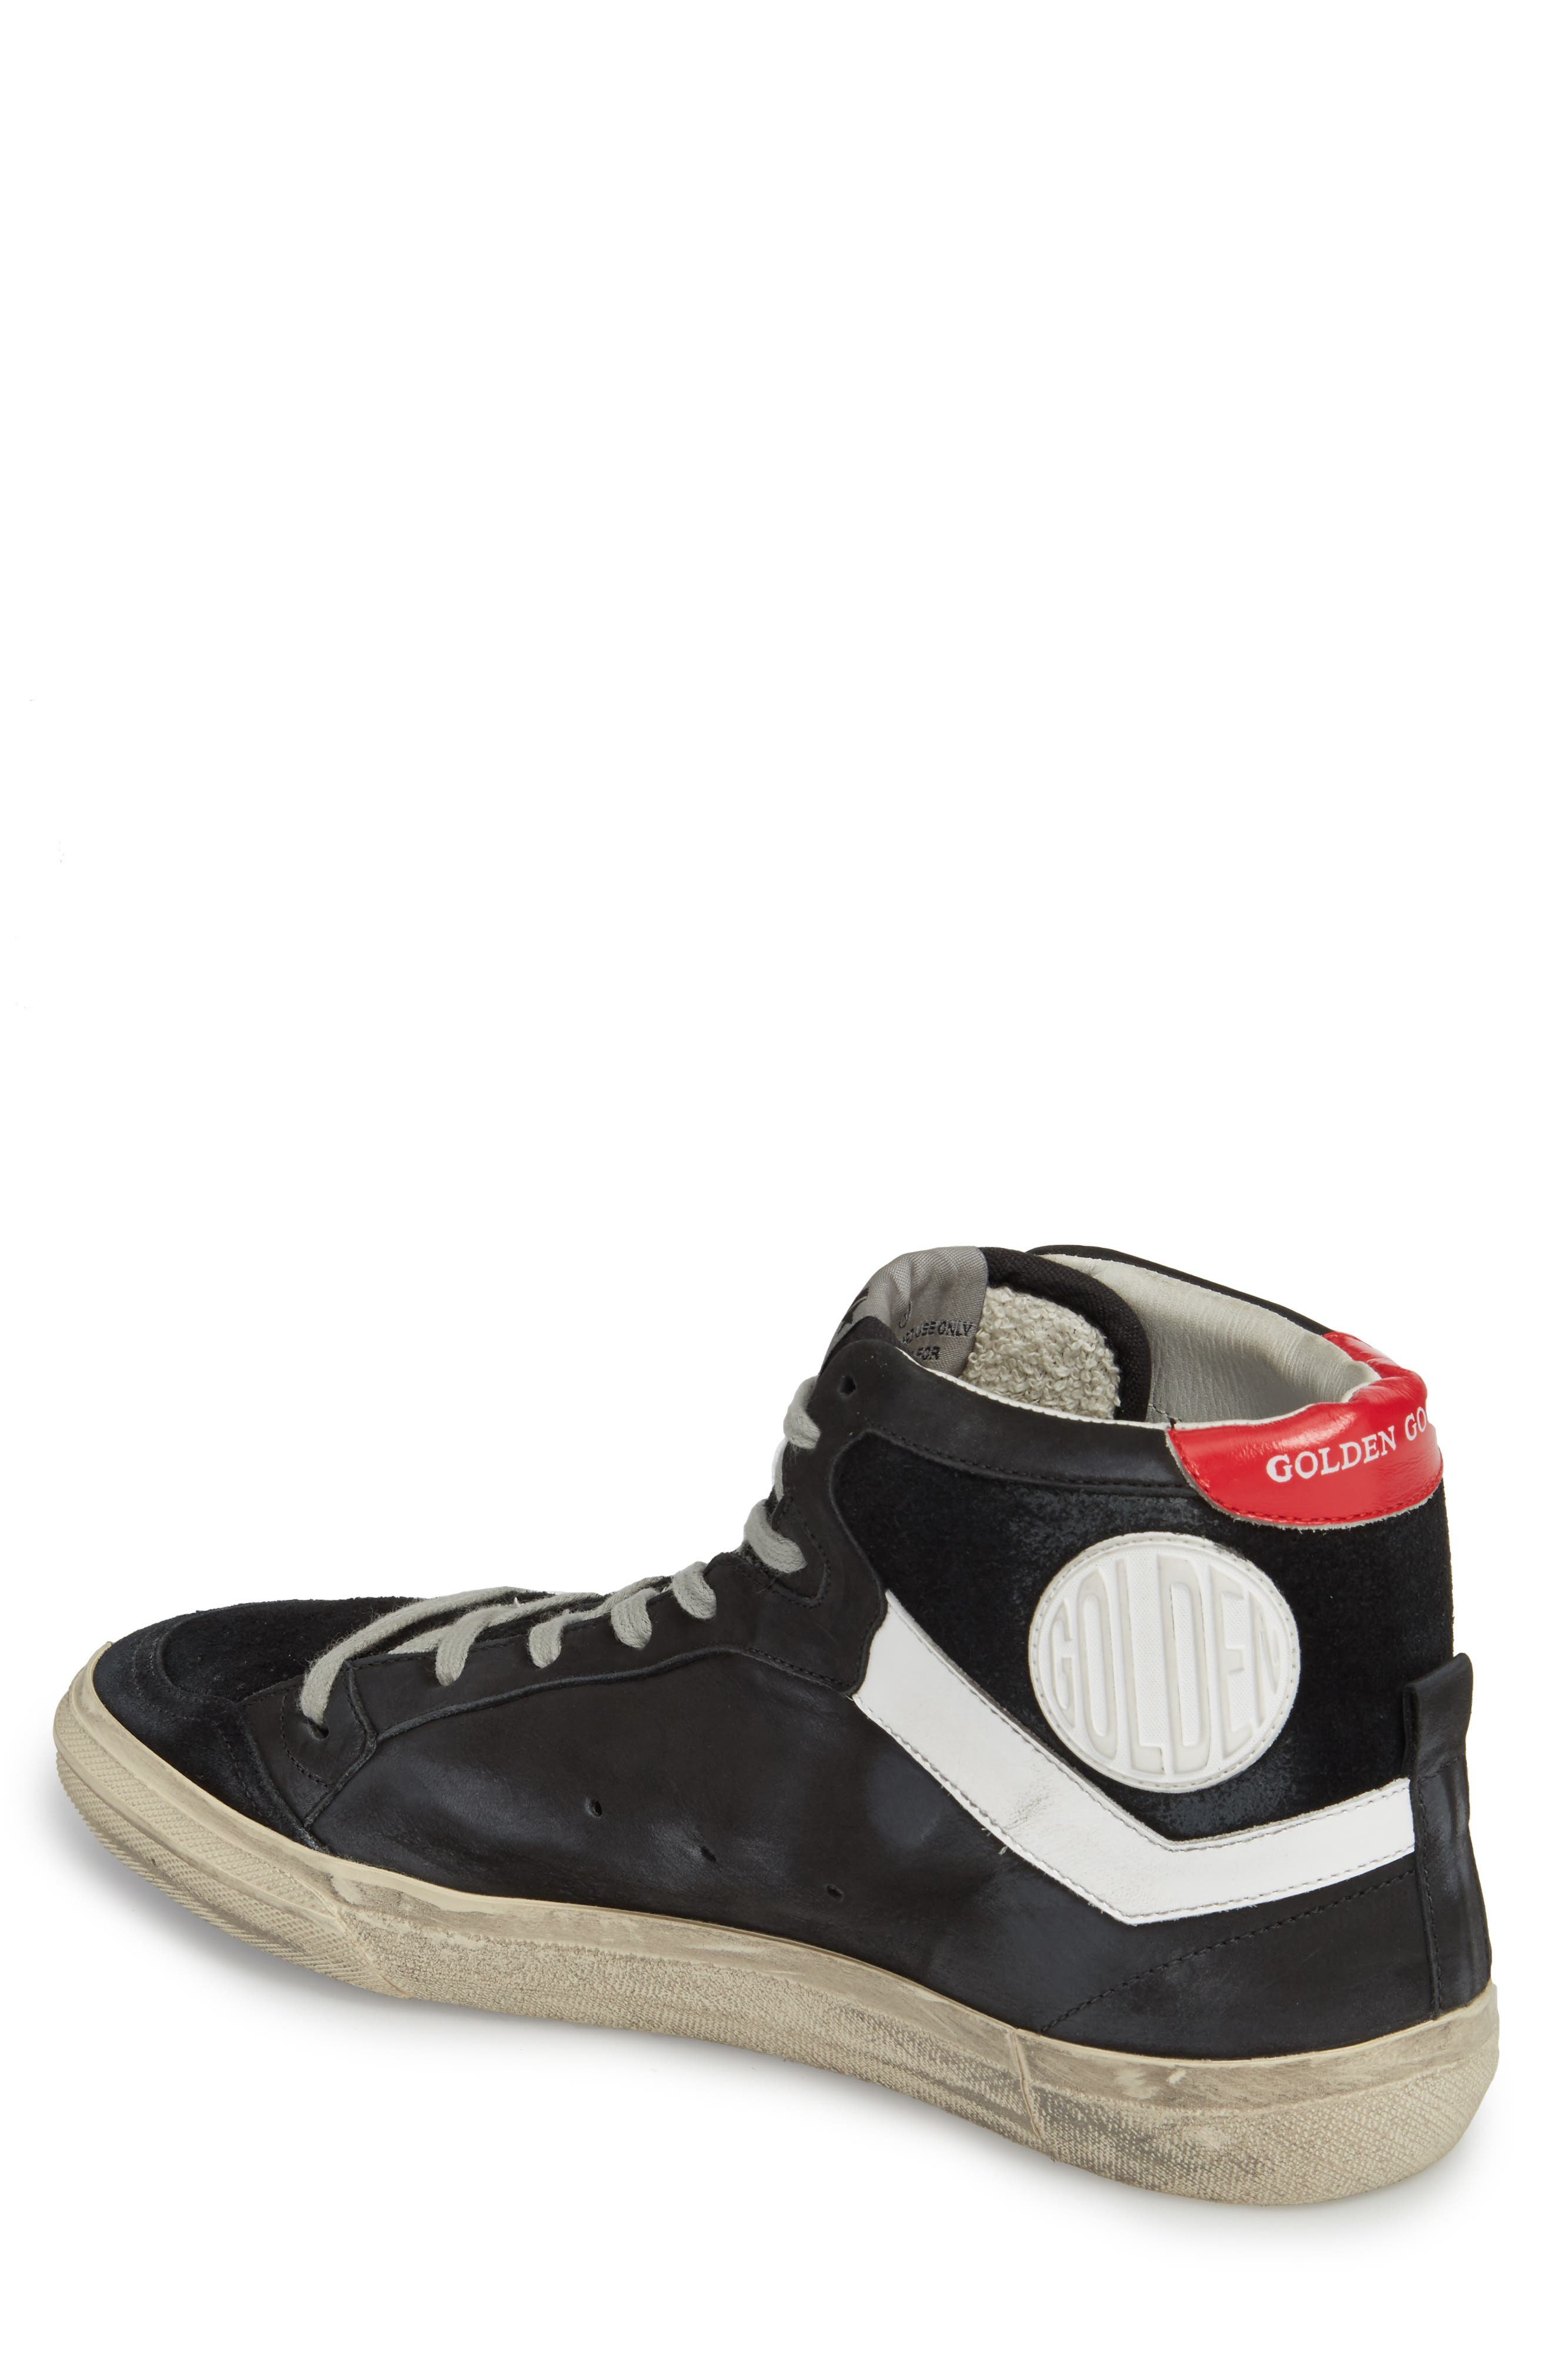 Alternate Image 2  - Golden Goose High Top Sneaker (Men)